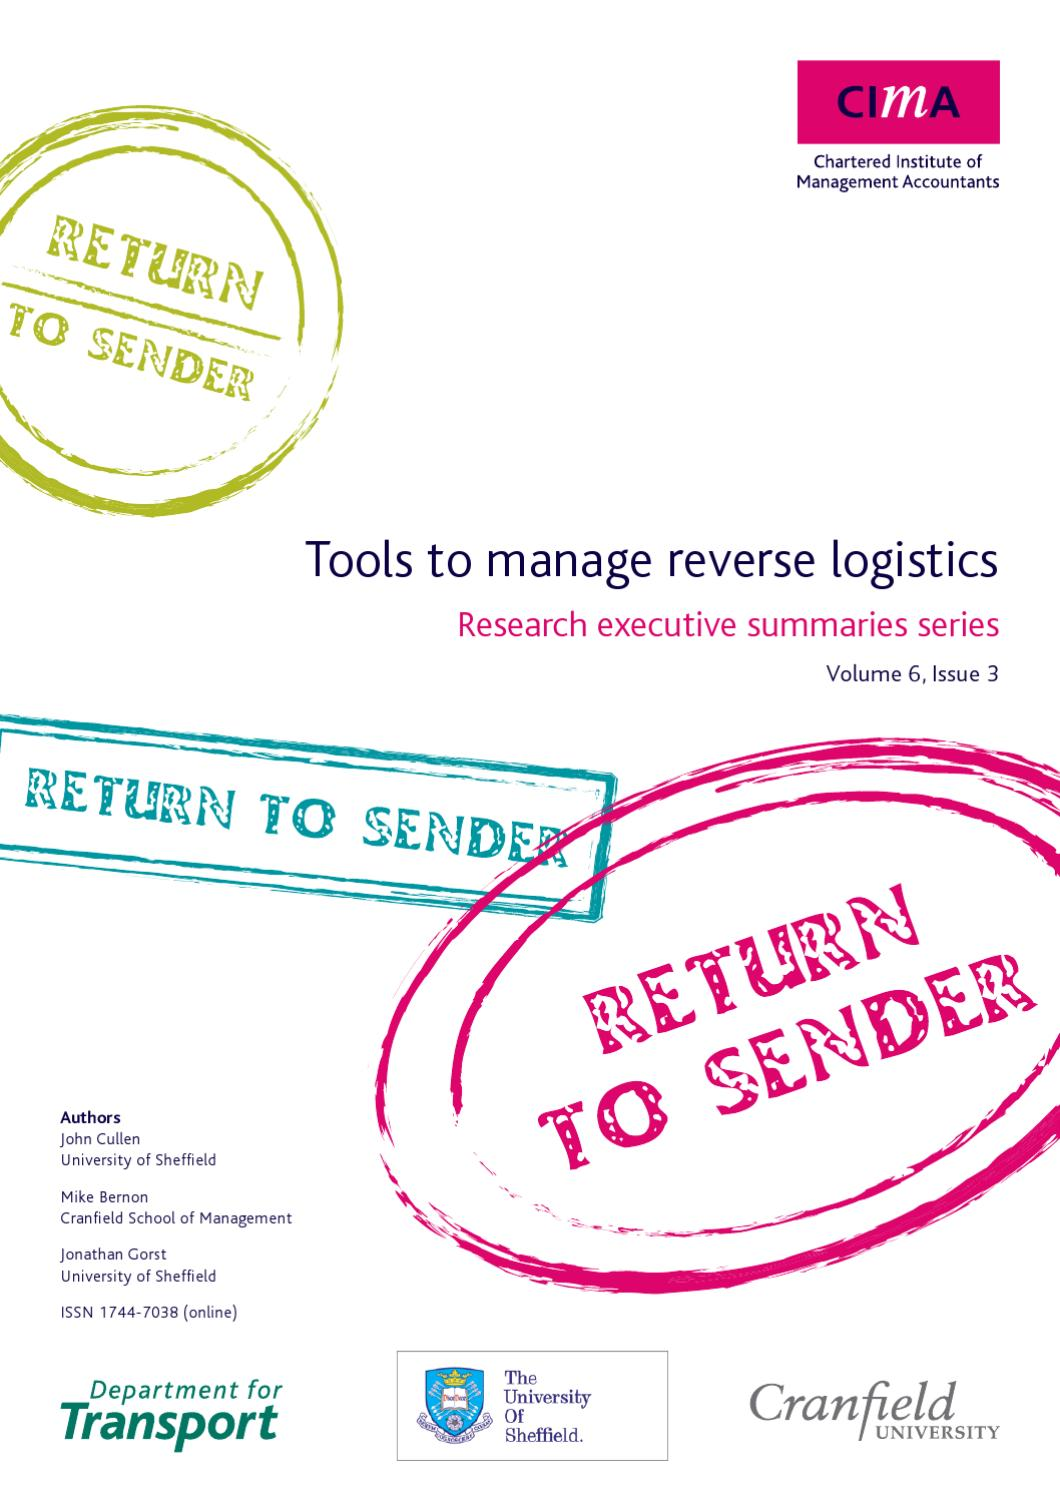 Tools to manage reverse logistics by Chartered Institute ...